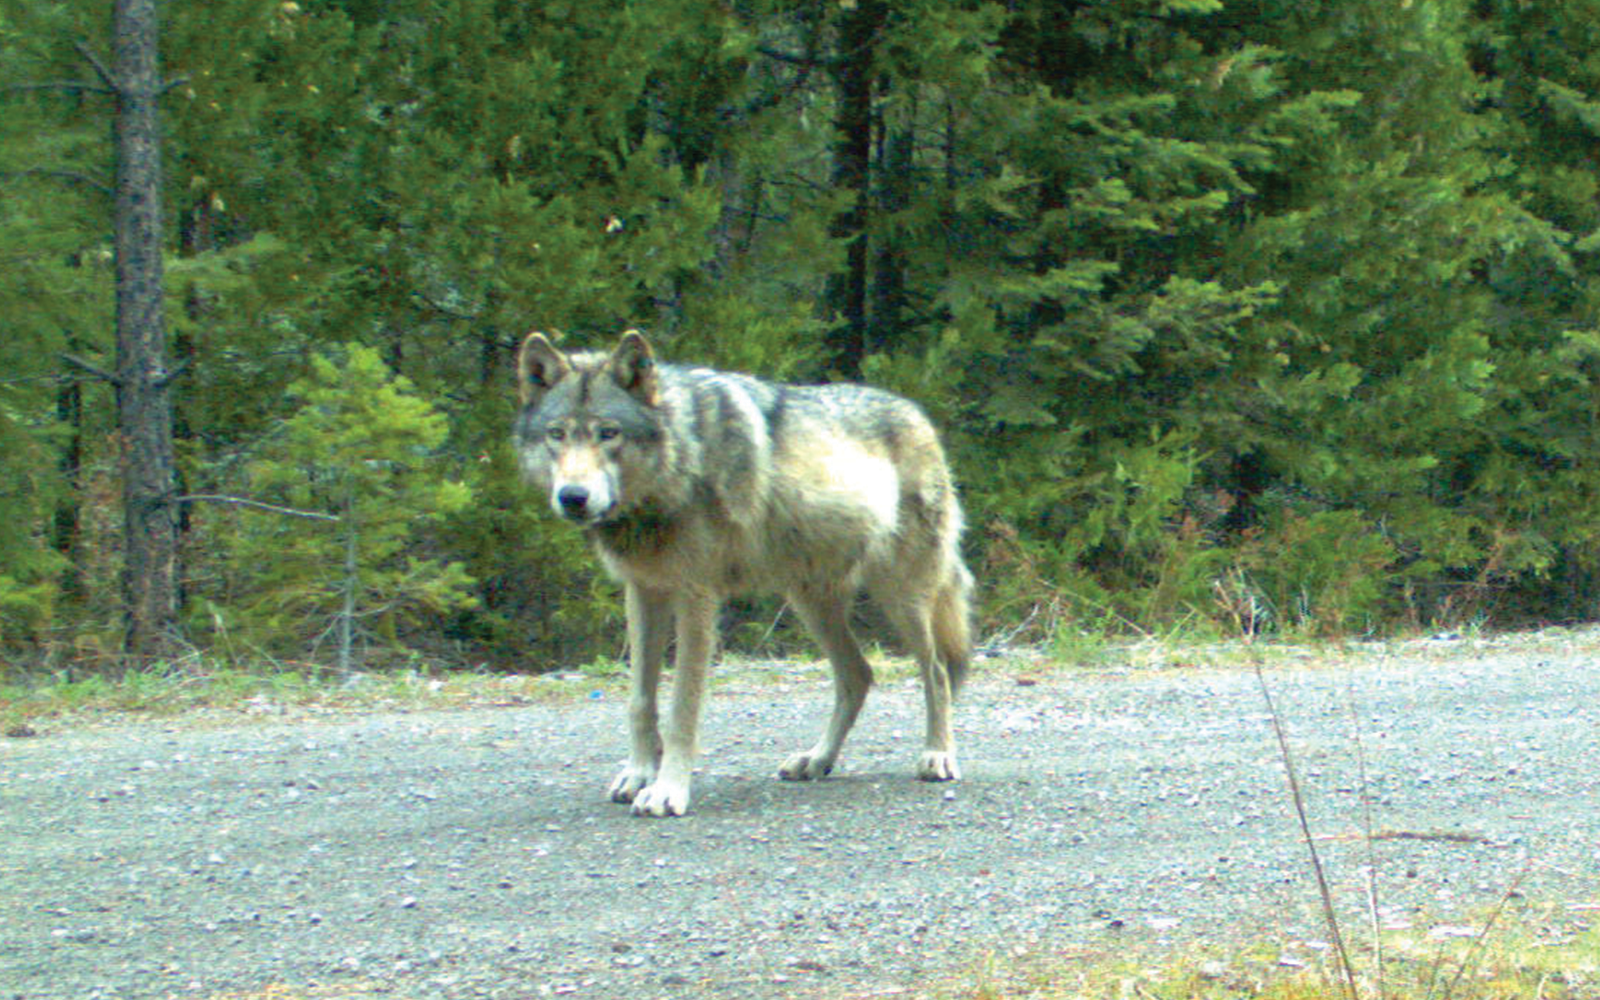 Press Release: Anniversary of OR-7's Arrival in California Inspires New Wolf Alliance